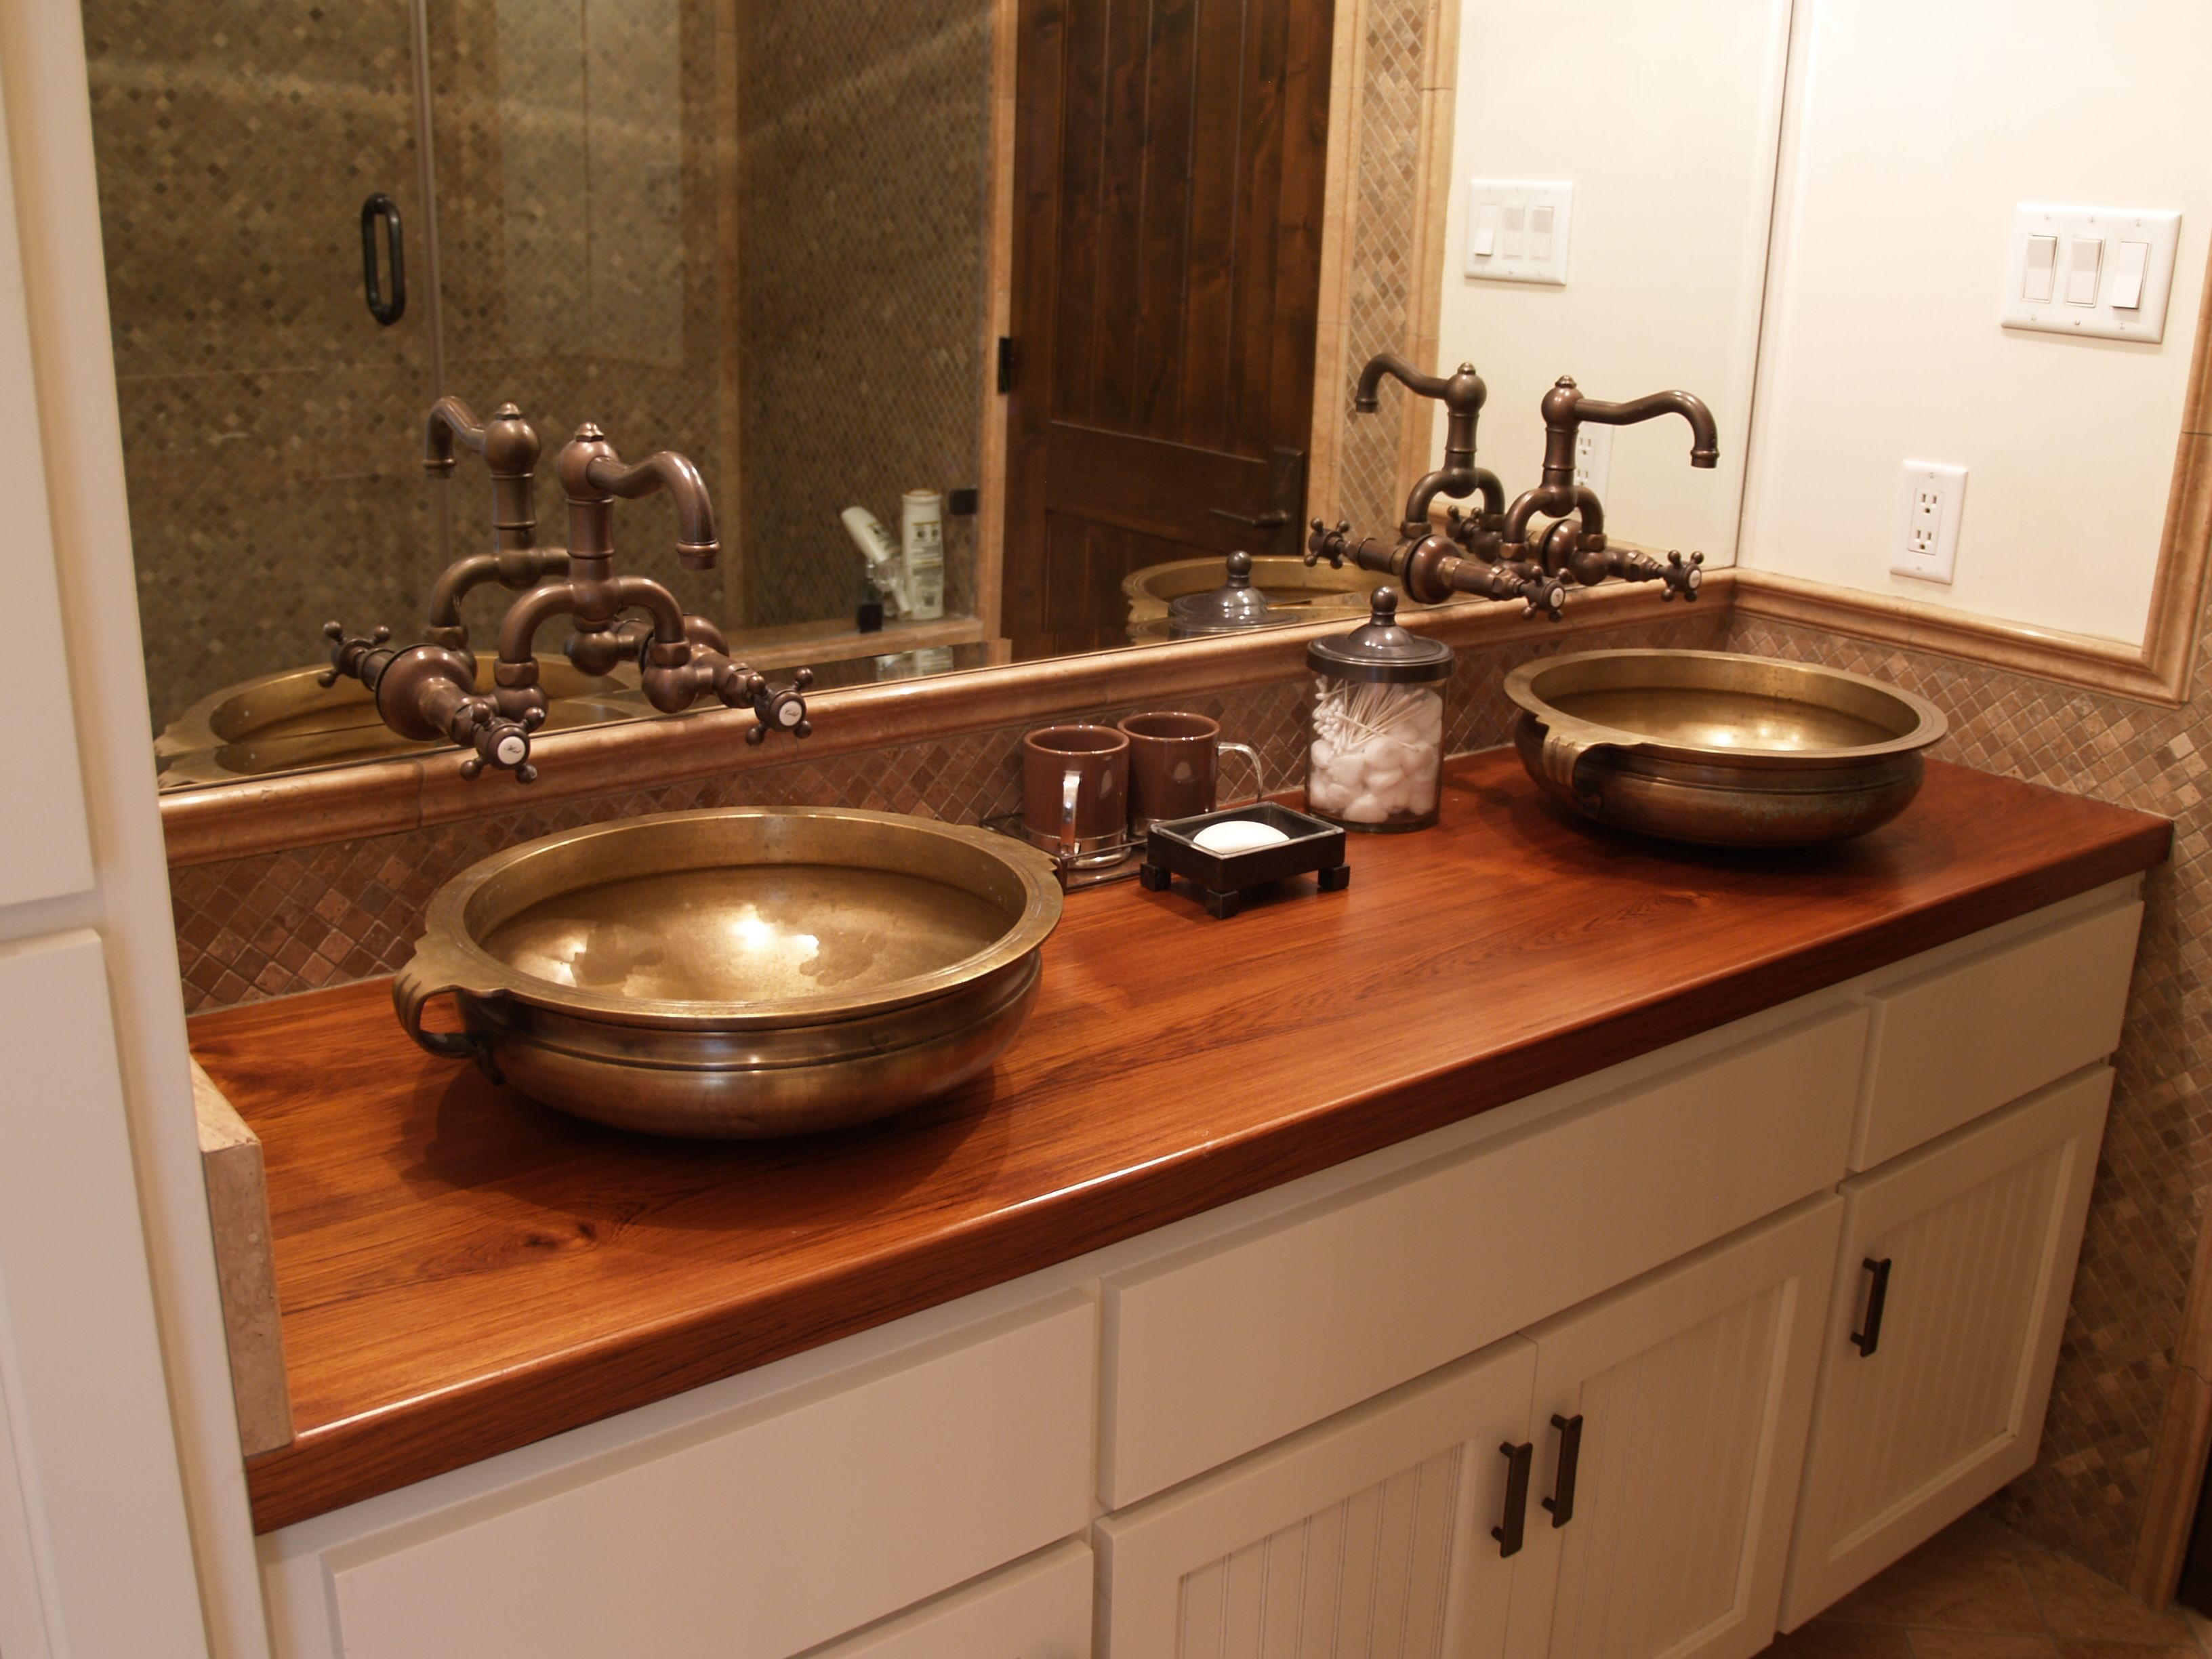 Wooden Sinks Vessel Sinks Are Free Standing Sinks That Sit Directly On